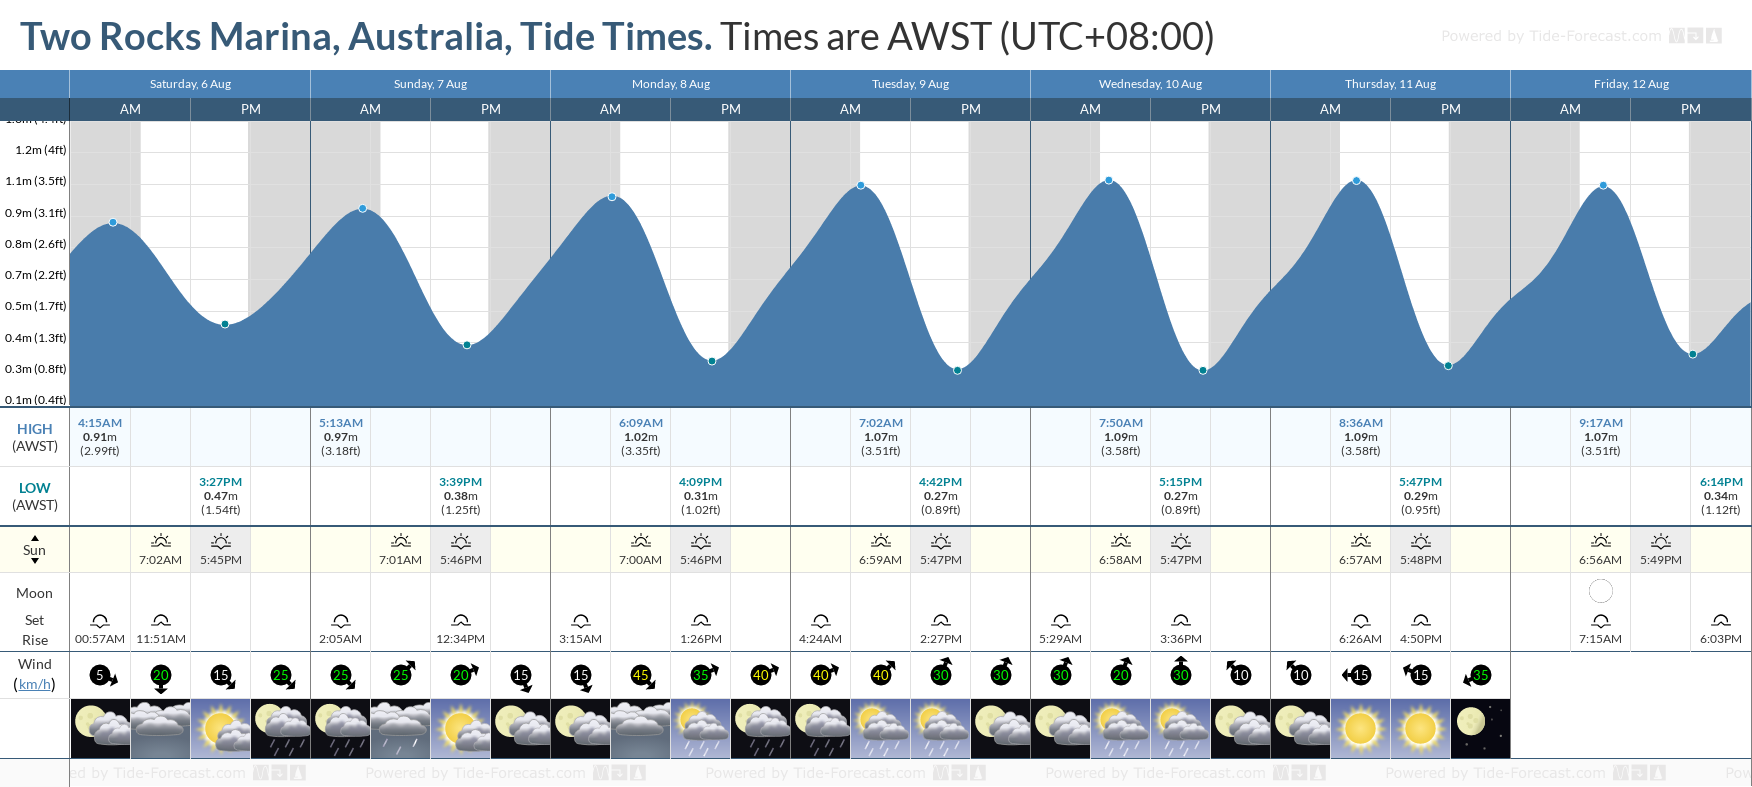 Two Rocks Marina, Australia Tide Chart including high and low tide tide times for the next 7 days